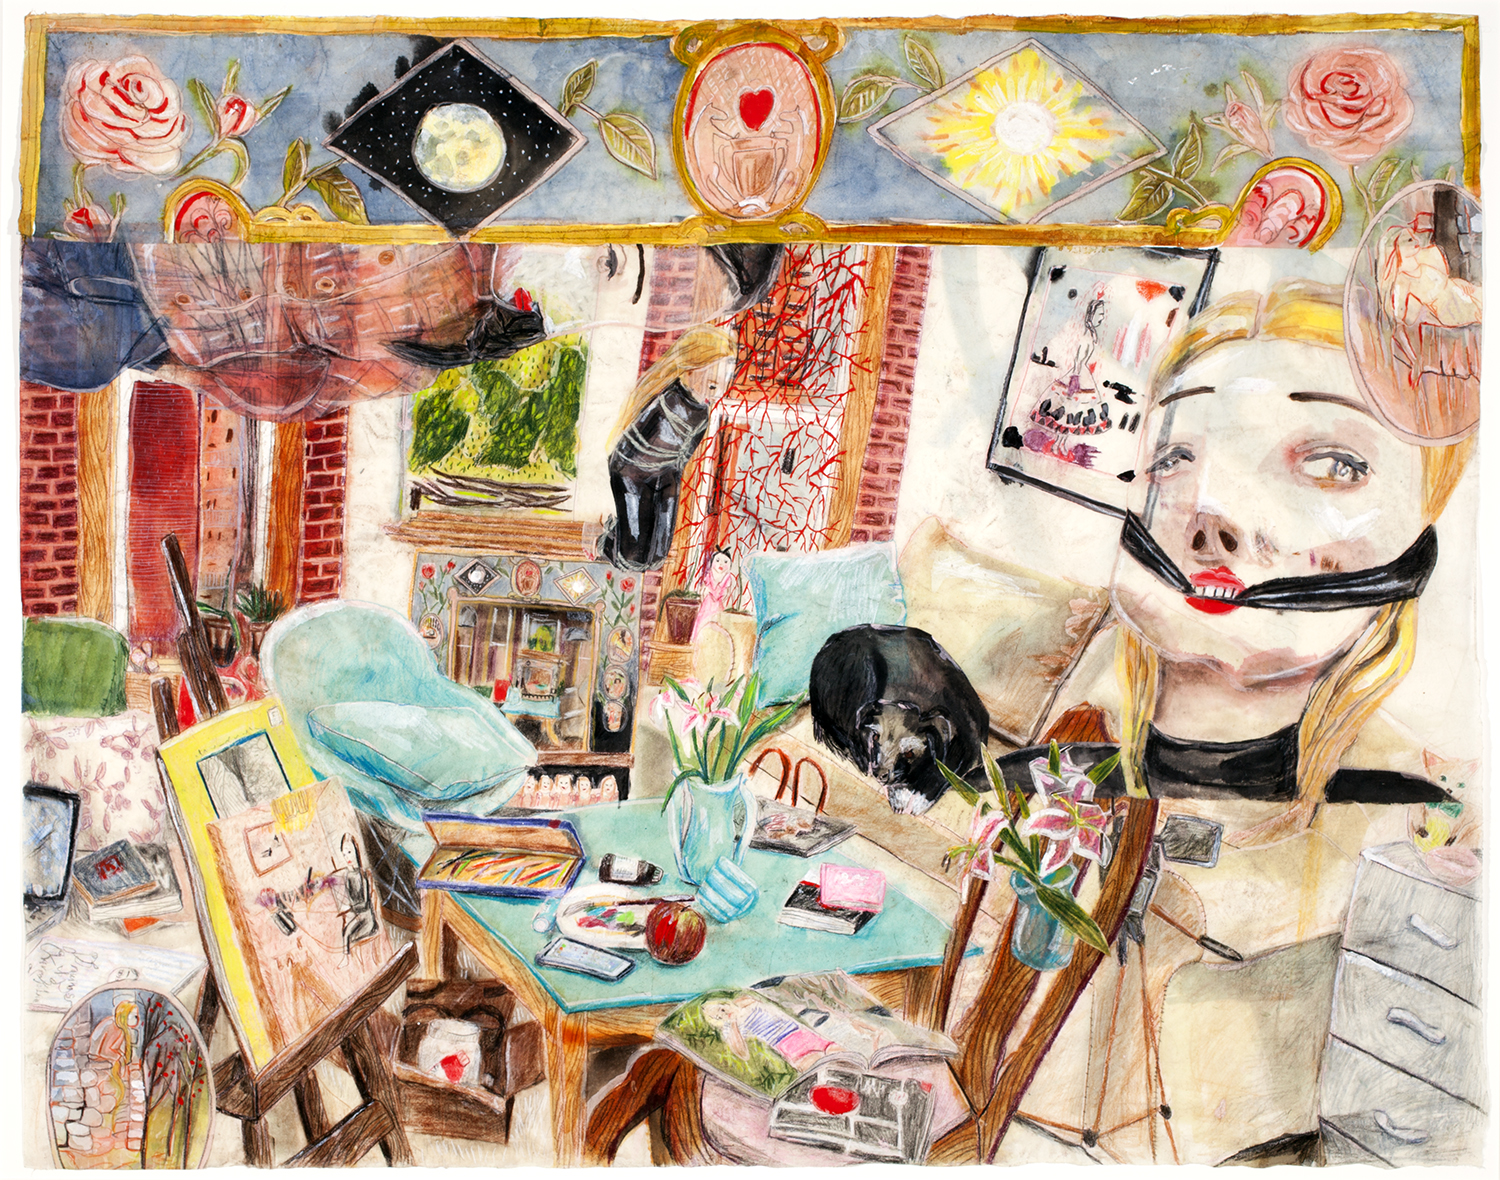 The Apartment, 2015, Acrylic, colored pencil, wax, rice paper, 31 x 38 inches